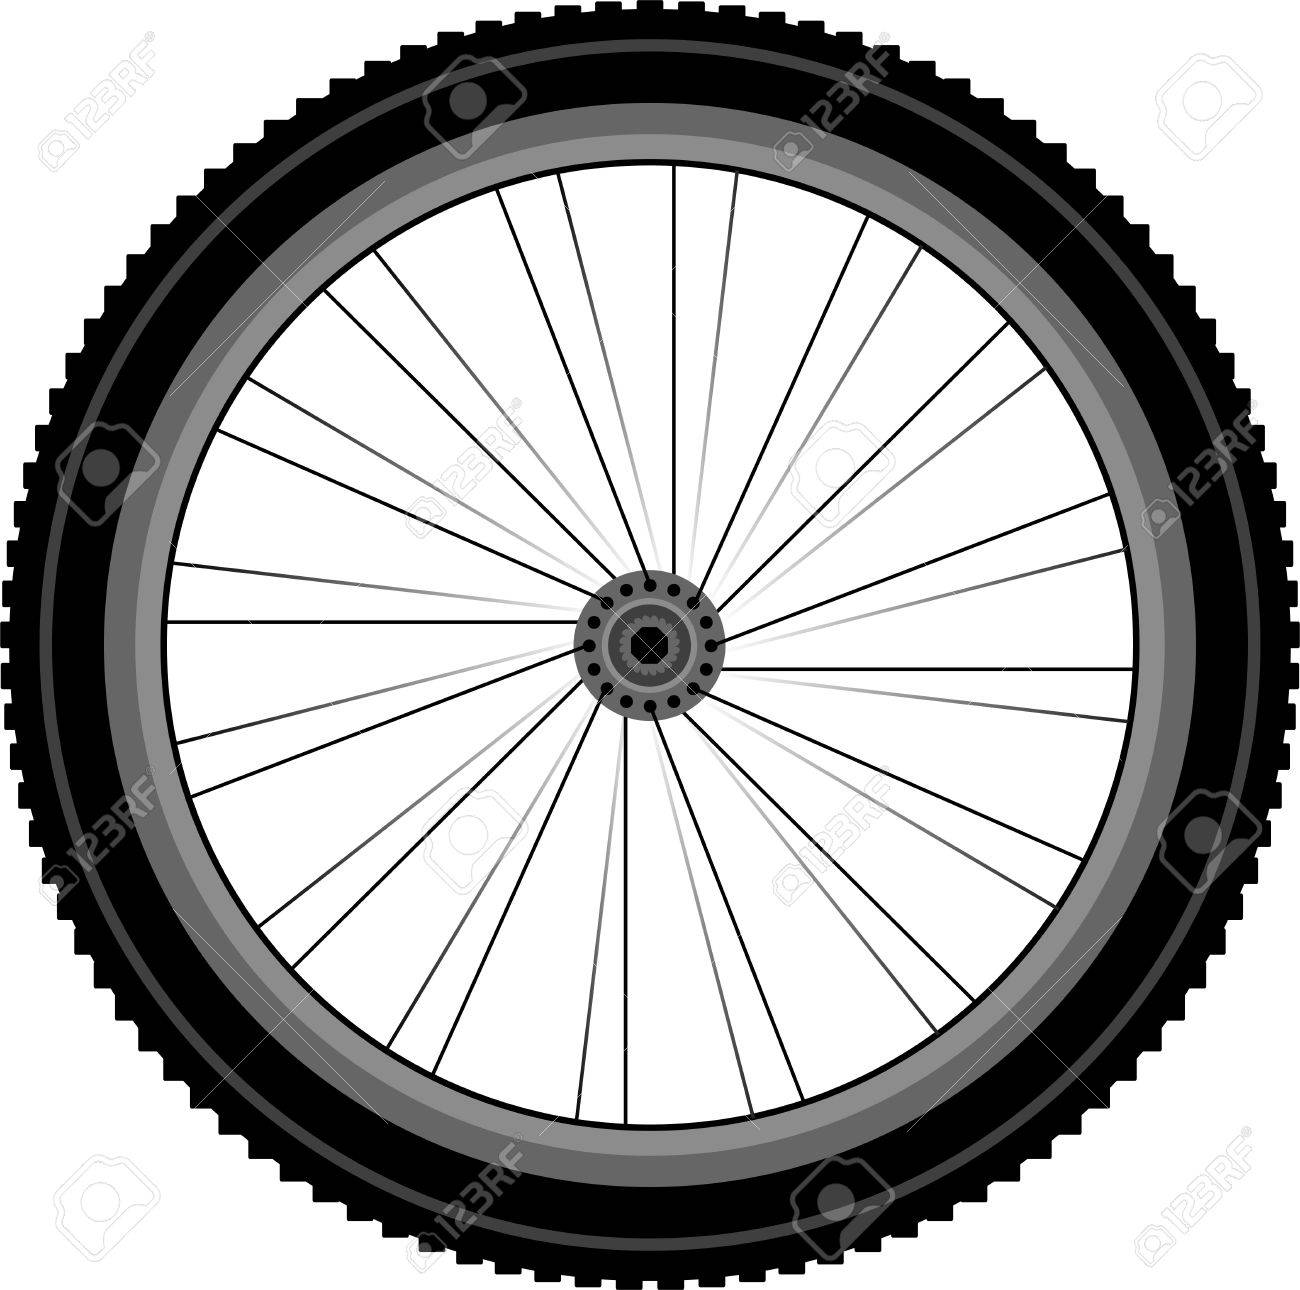 Bicycle wheel clipart 7 » Clipart Station.